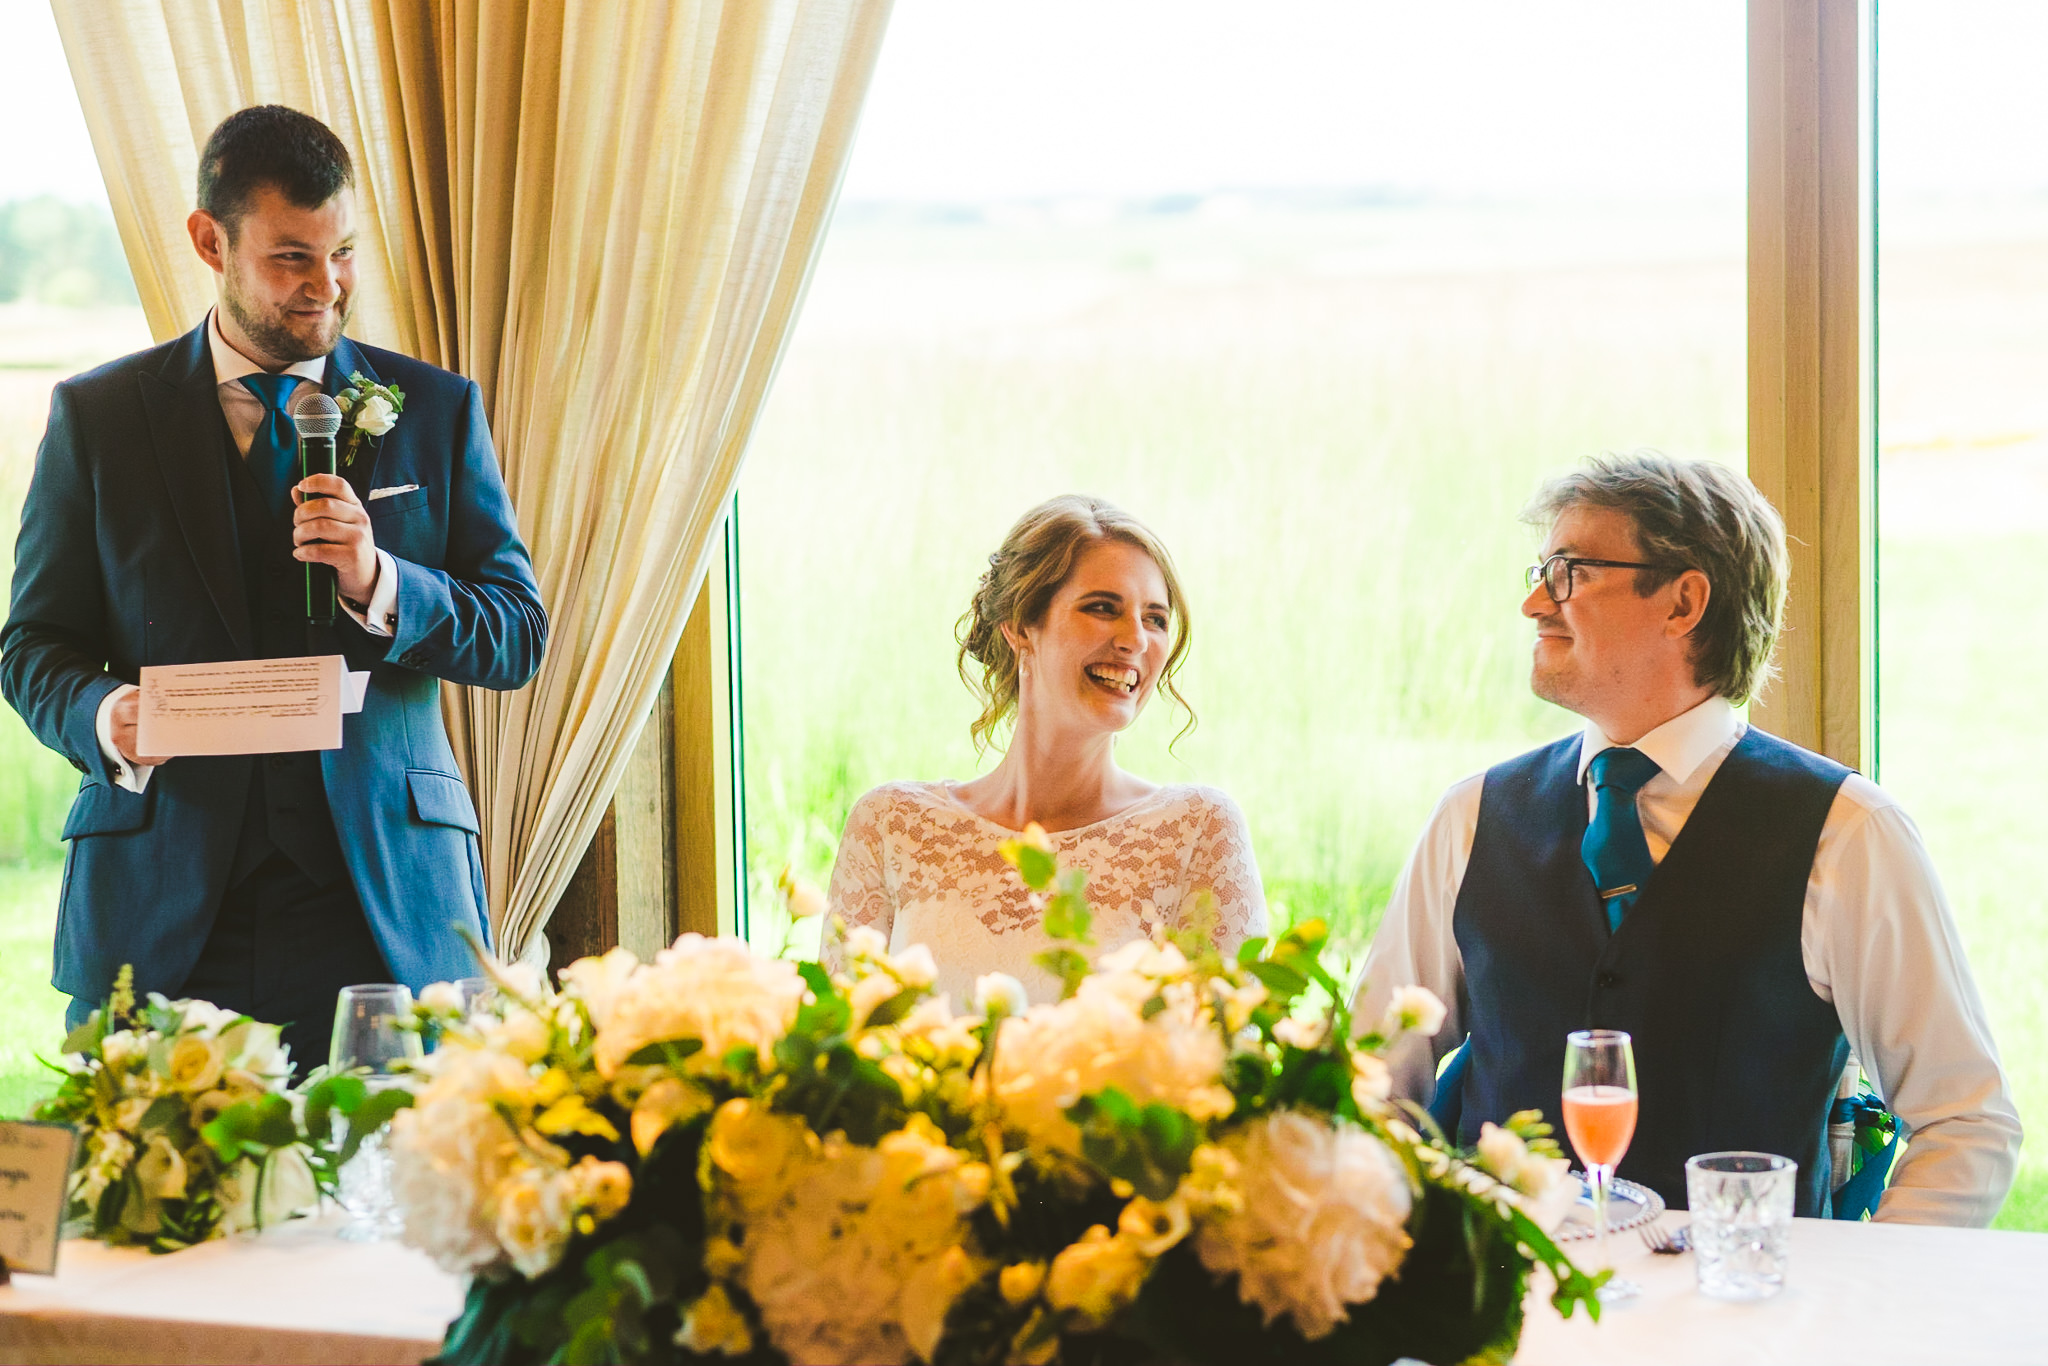 Best man makes bride and groom laugh during speeches